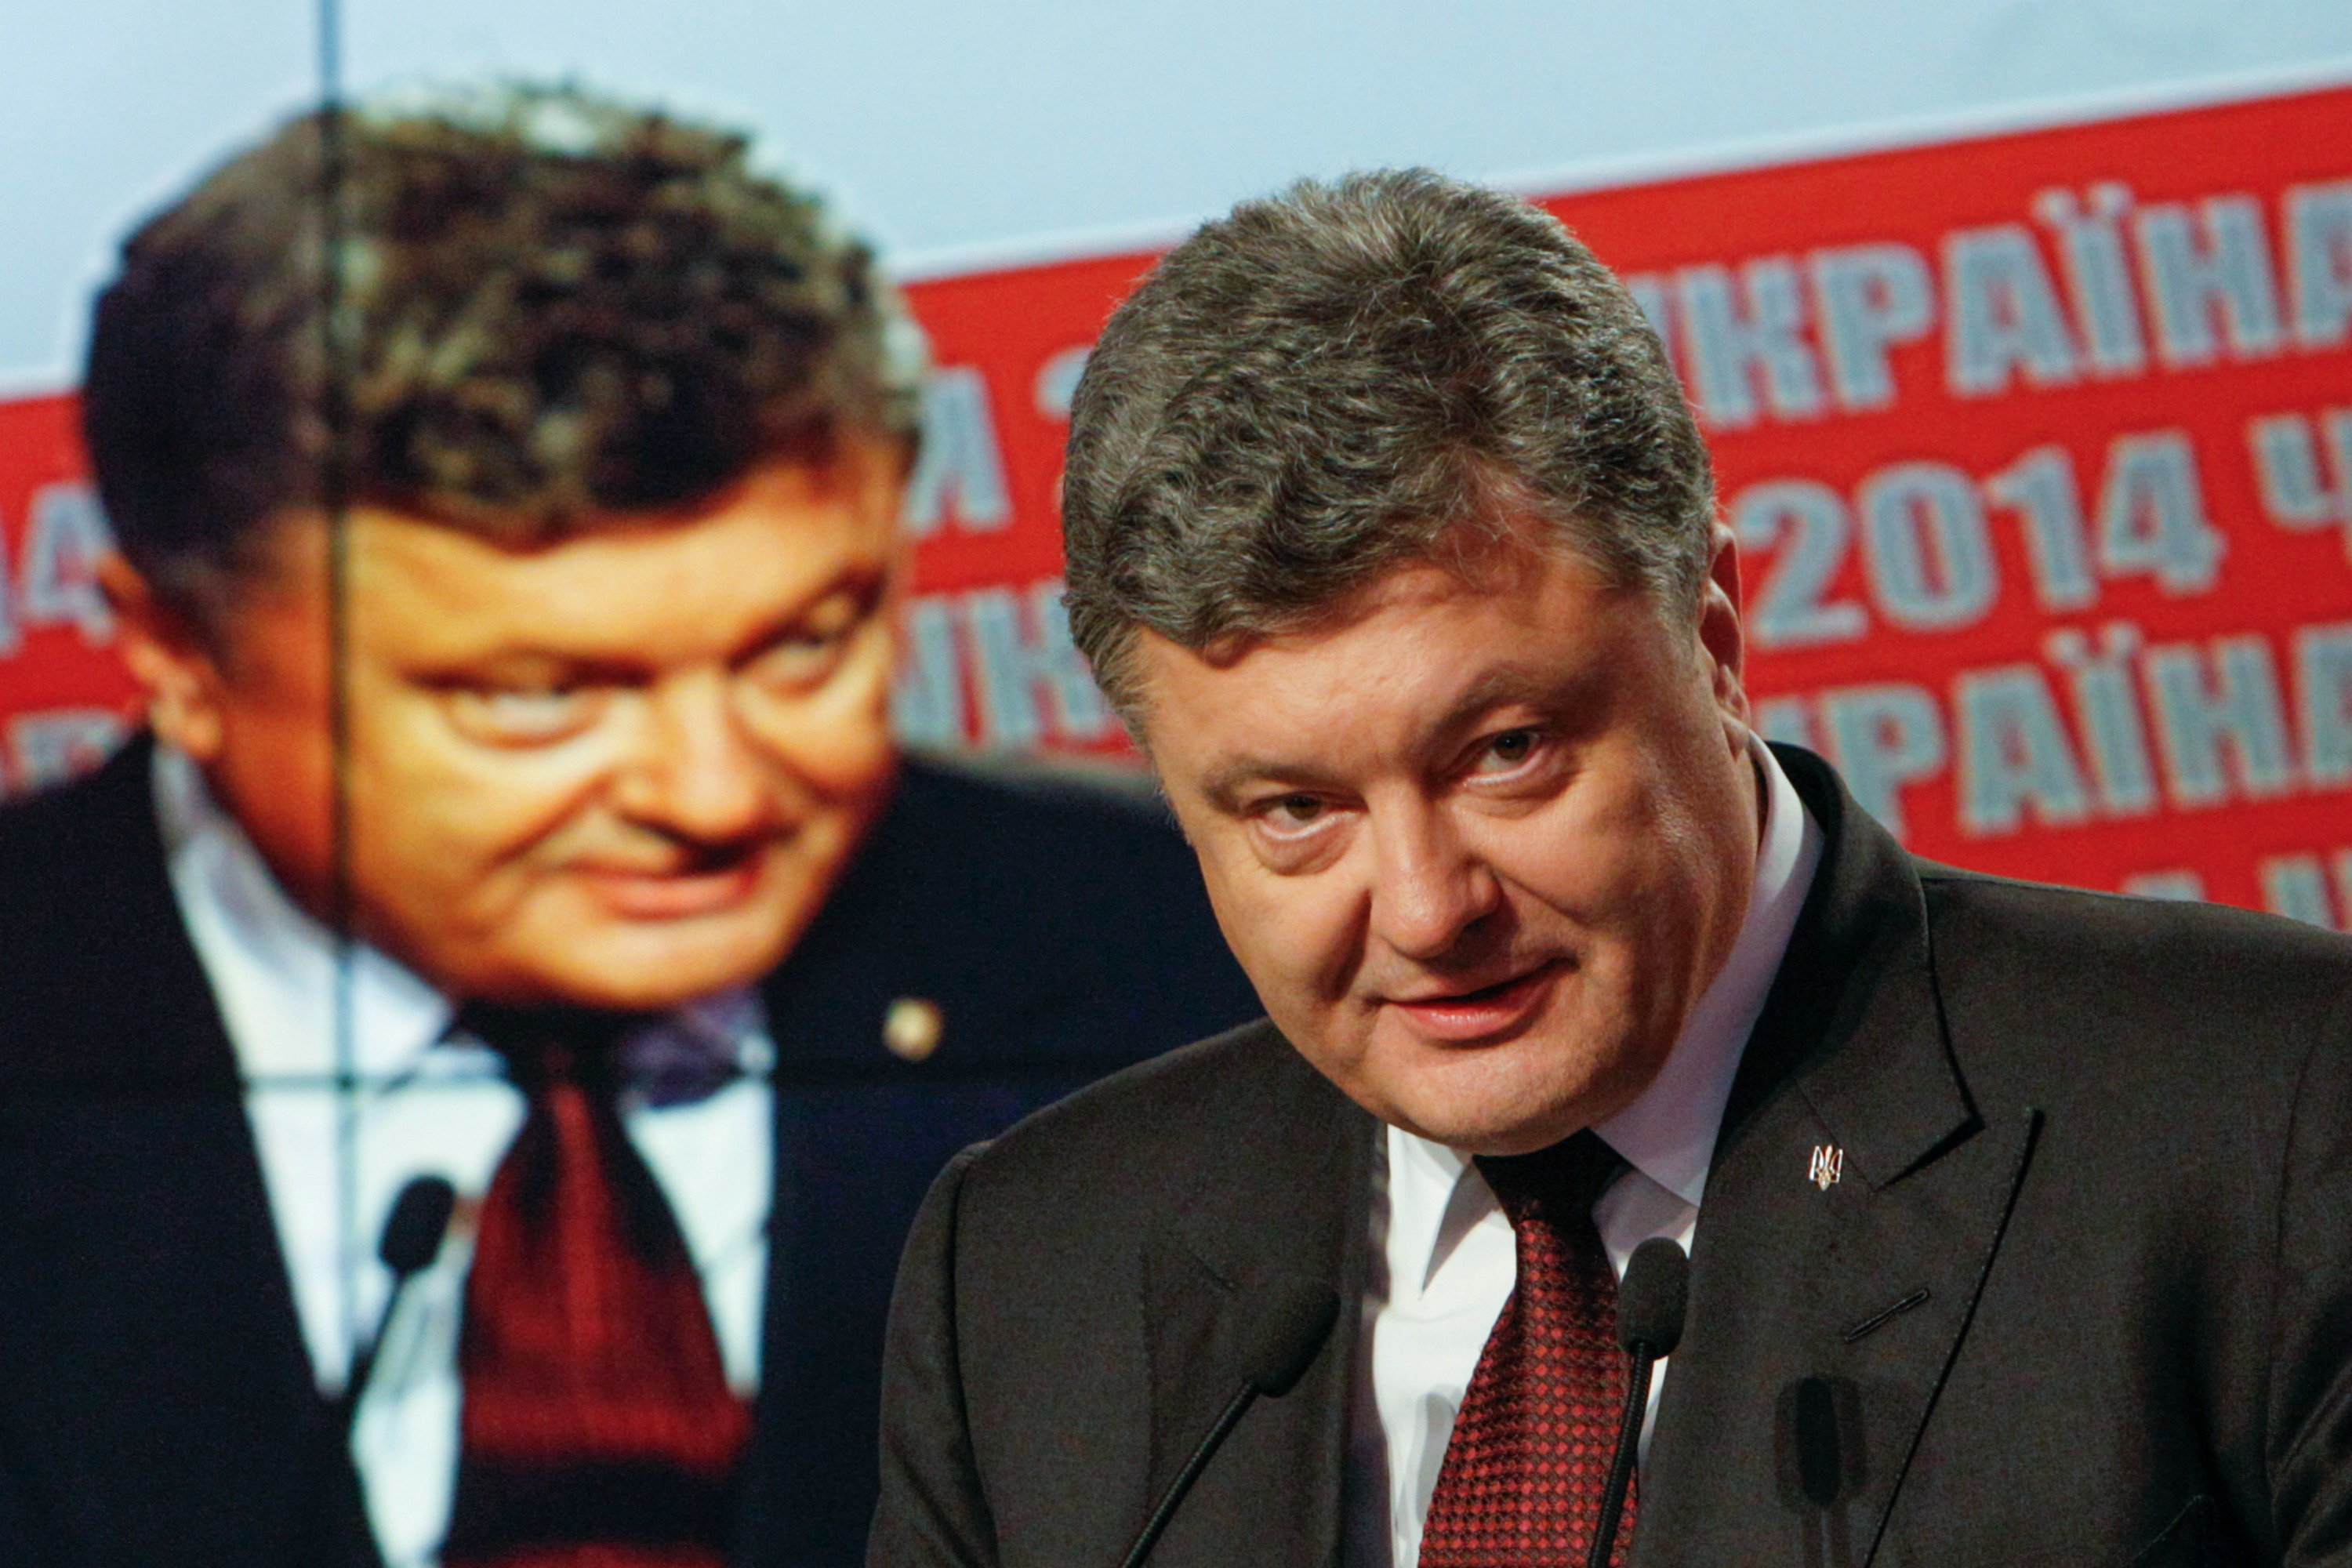 Ukraine's President Petro Poroshenko talks to the media during a news briefing in Kyiv, October 26, 2014.